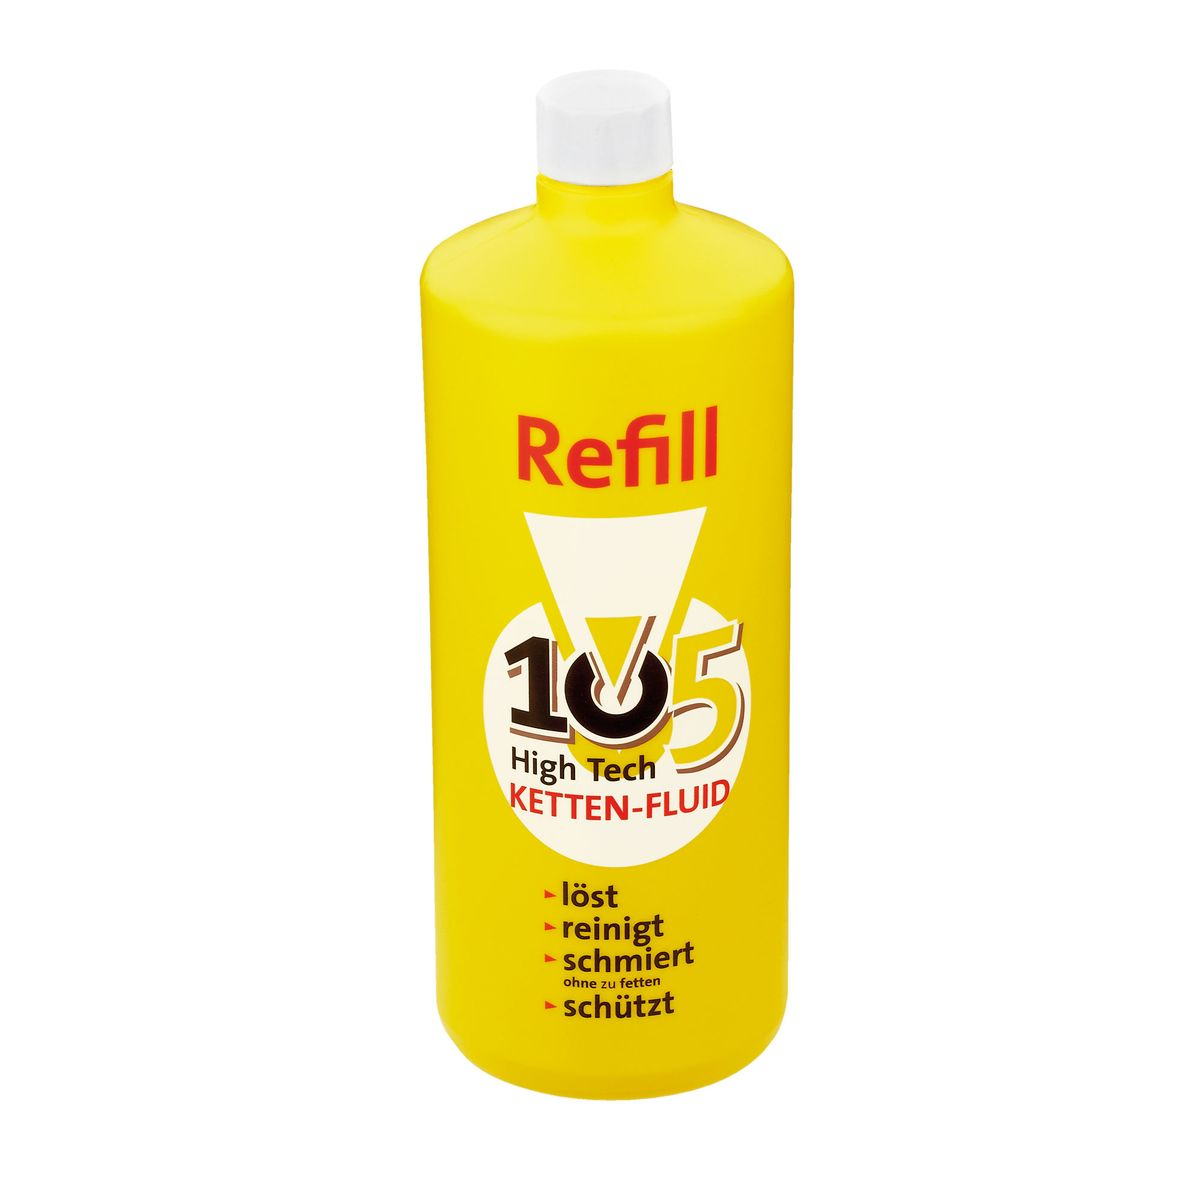 105 High Tech Ketten-Fluid Refill